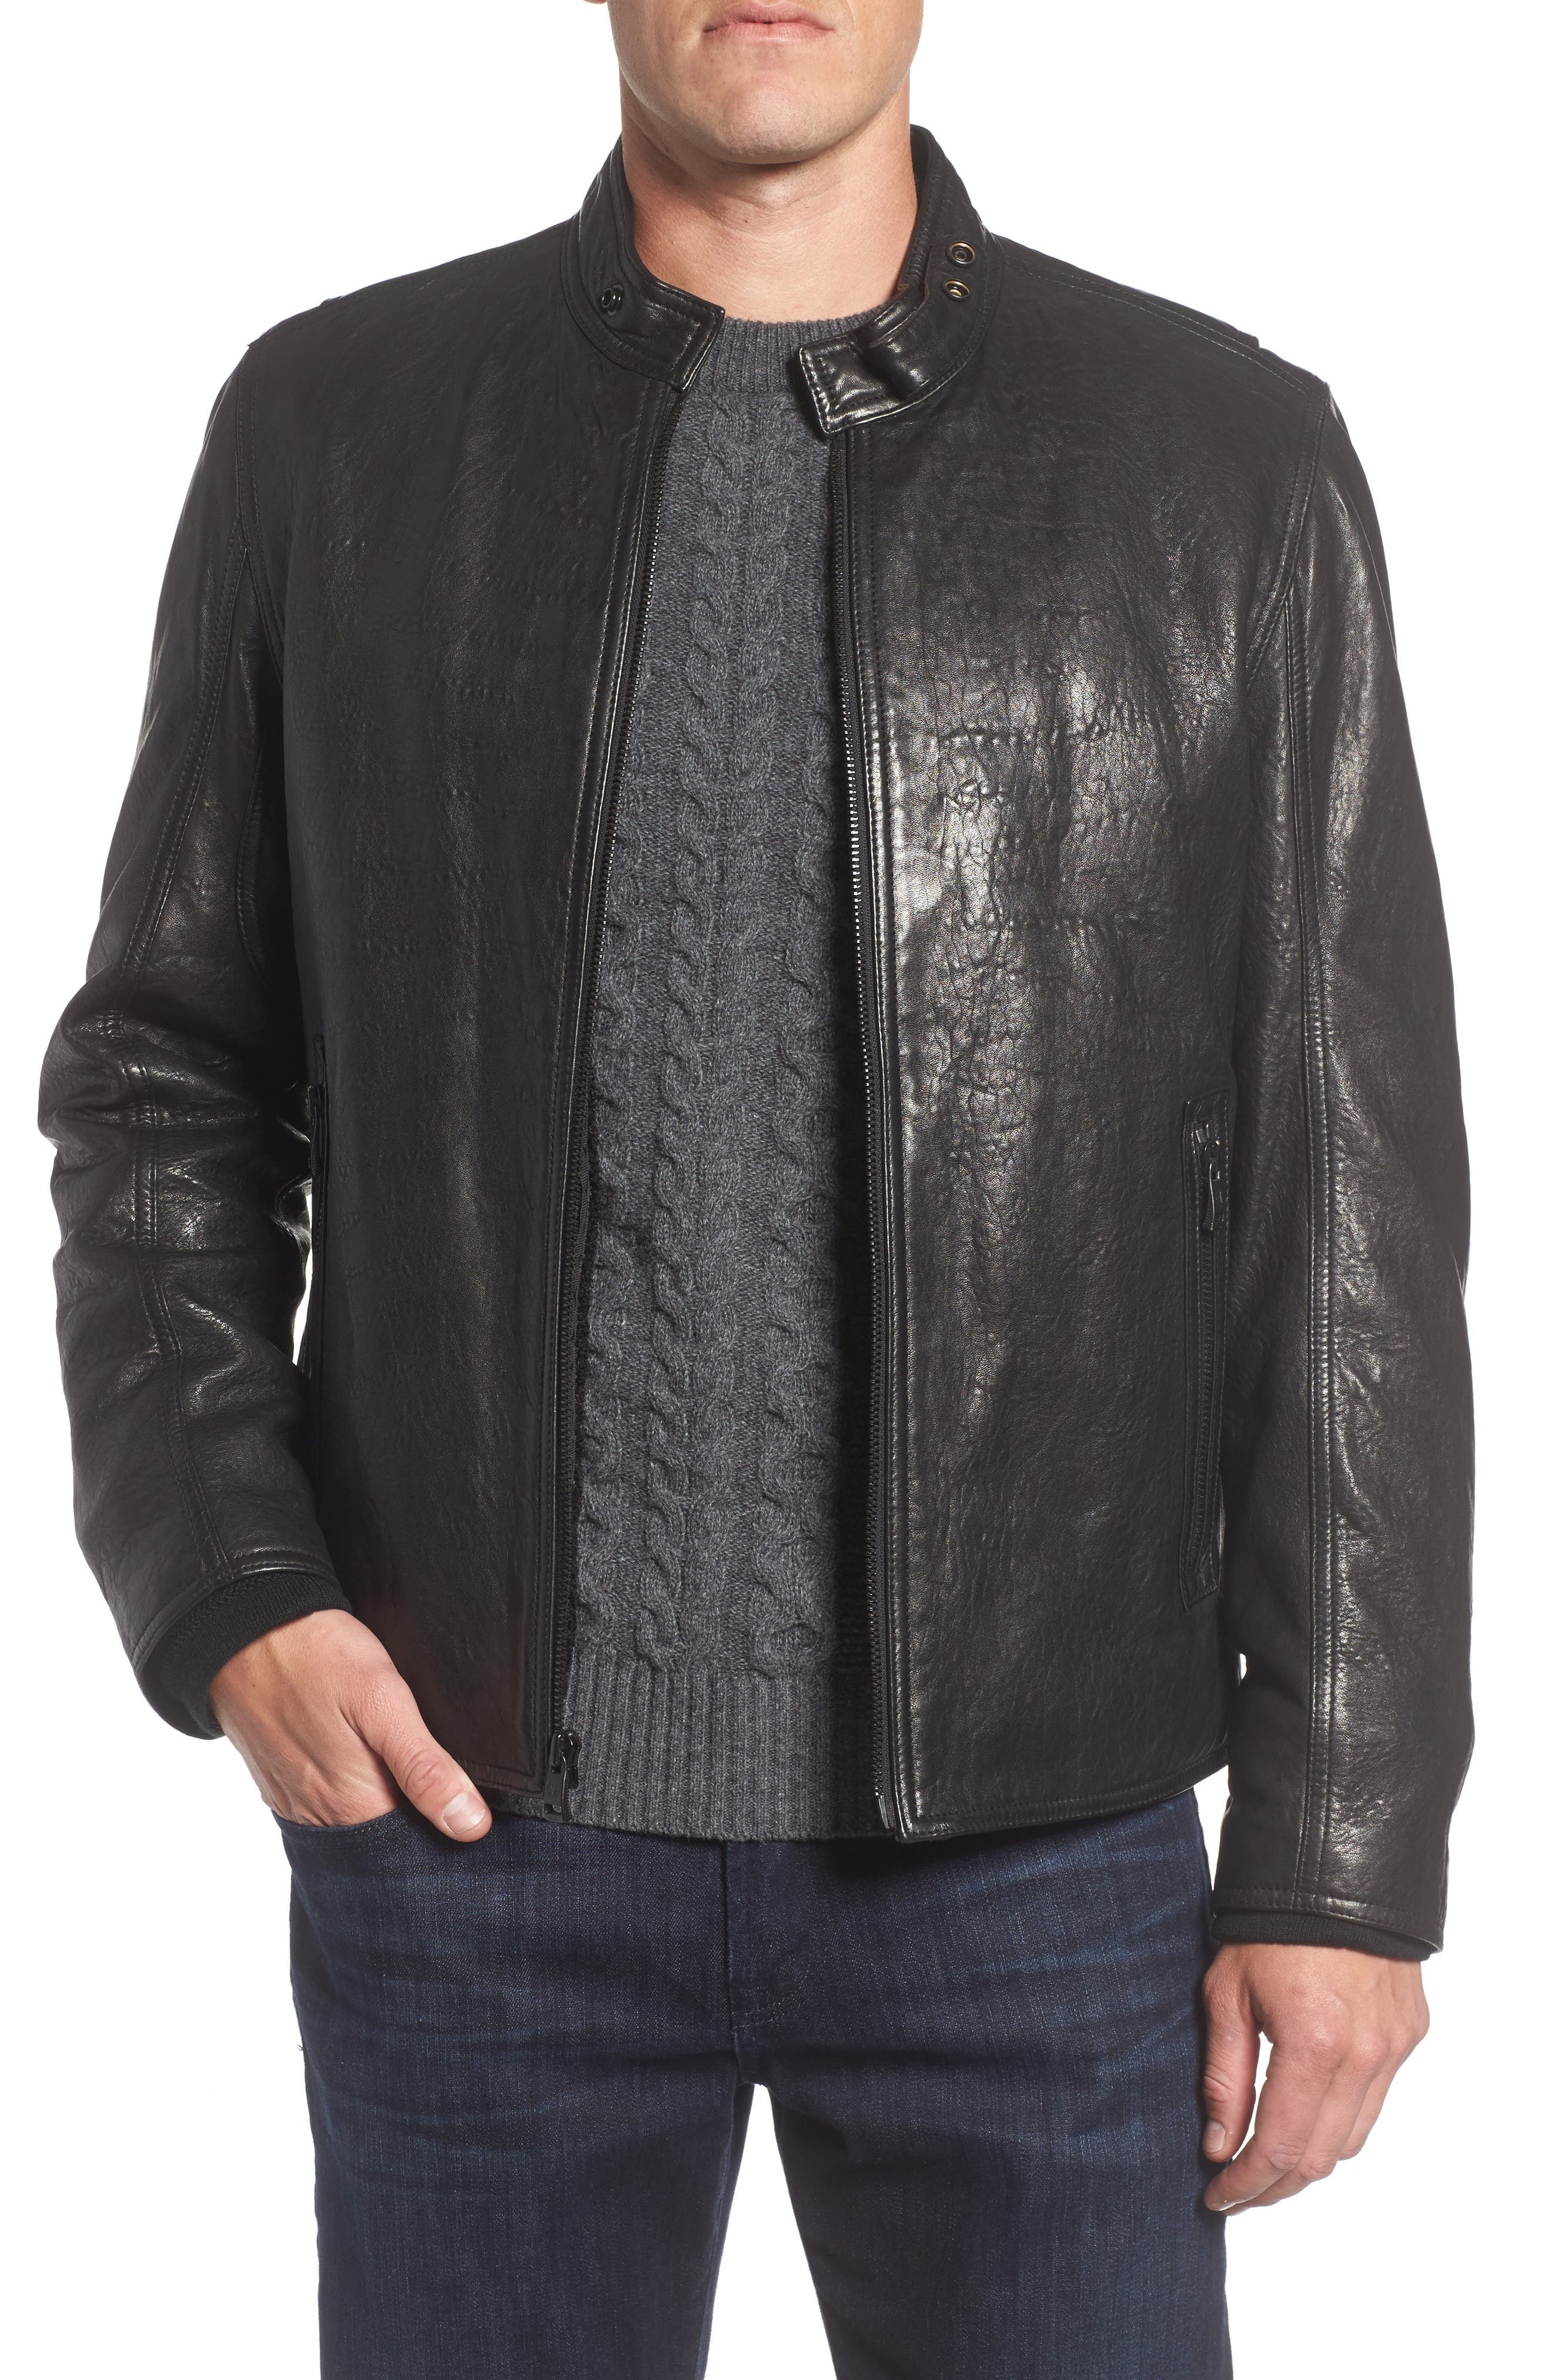 Andrew Marc Cafe Racer Slim Leather Jacket with Faux Shearling Lining